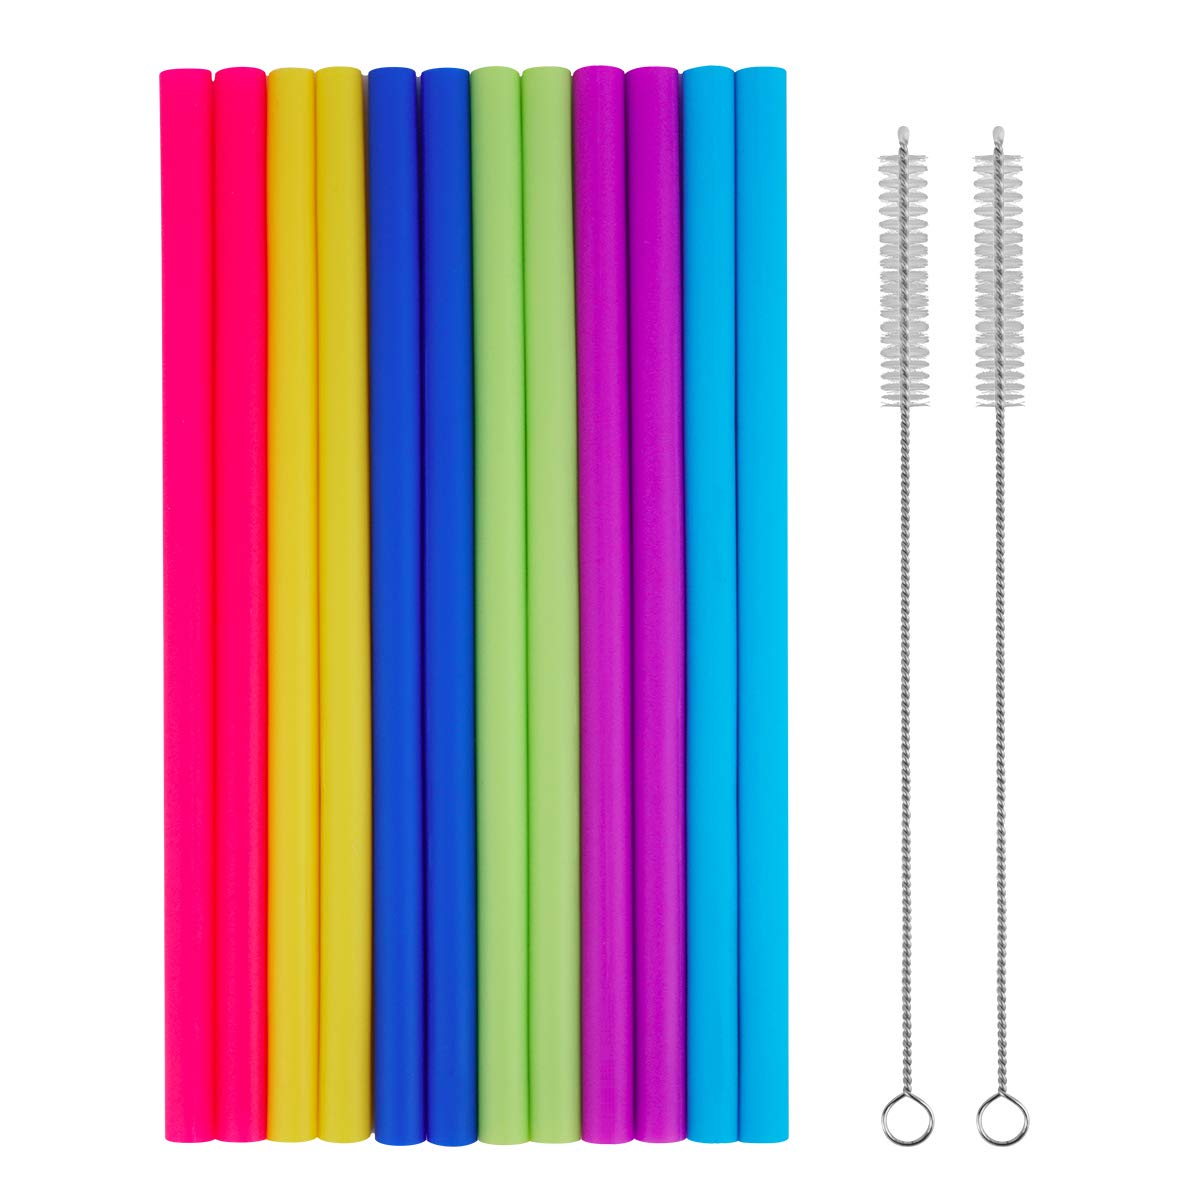 14PCS - Reusable Smoothie Straws with Cleaning Brushes, Tifanso Extra Wide Large Straws - Great for Bubble & Boba Tea, Milkshakes, 10inch Extra Long Flexible Jumbo Straws for 30oz RTIC Rambler Tumbler